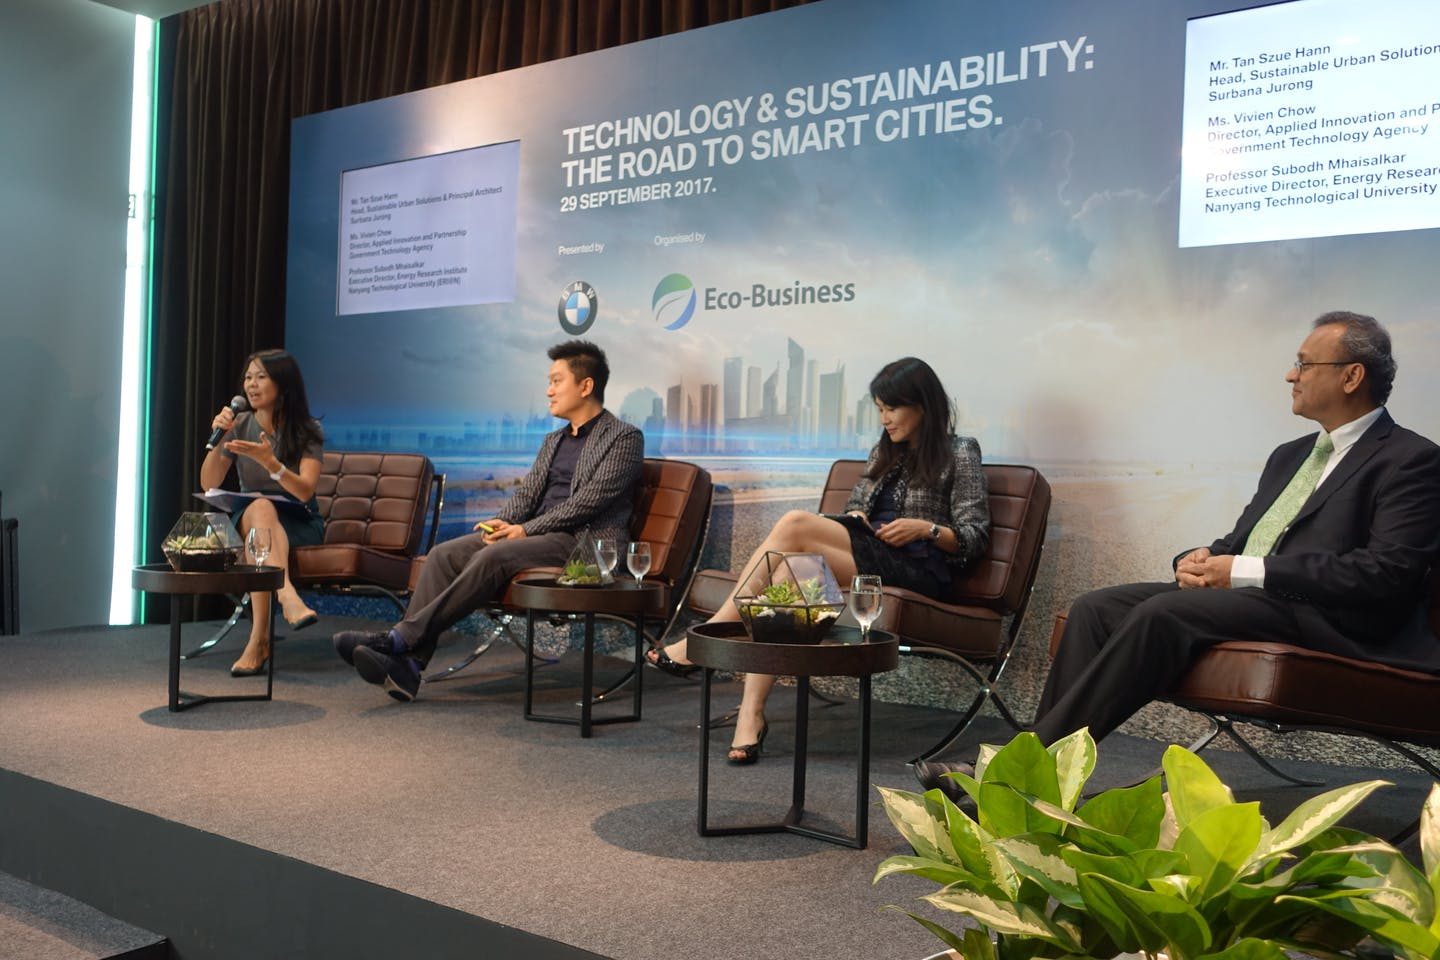 Second photo of Panel discussion at Technology + Sustainability event by Eco-Business and BMW Asia